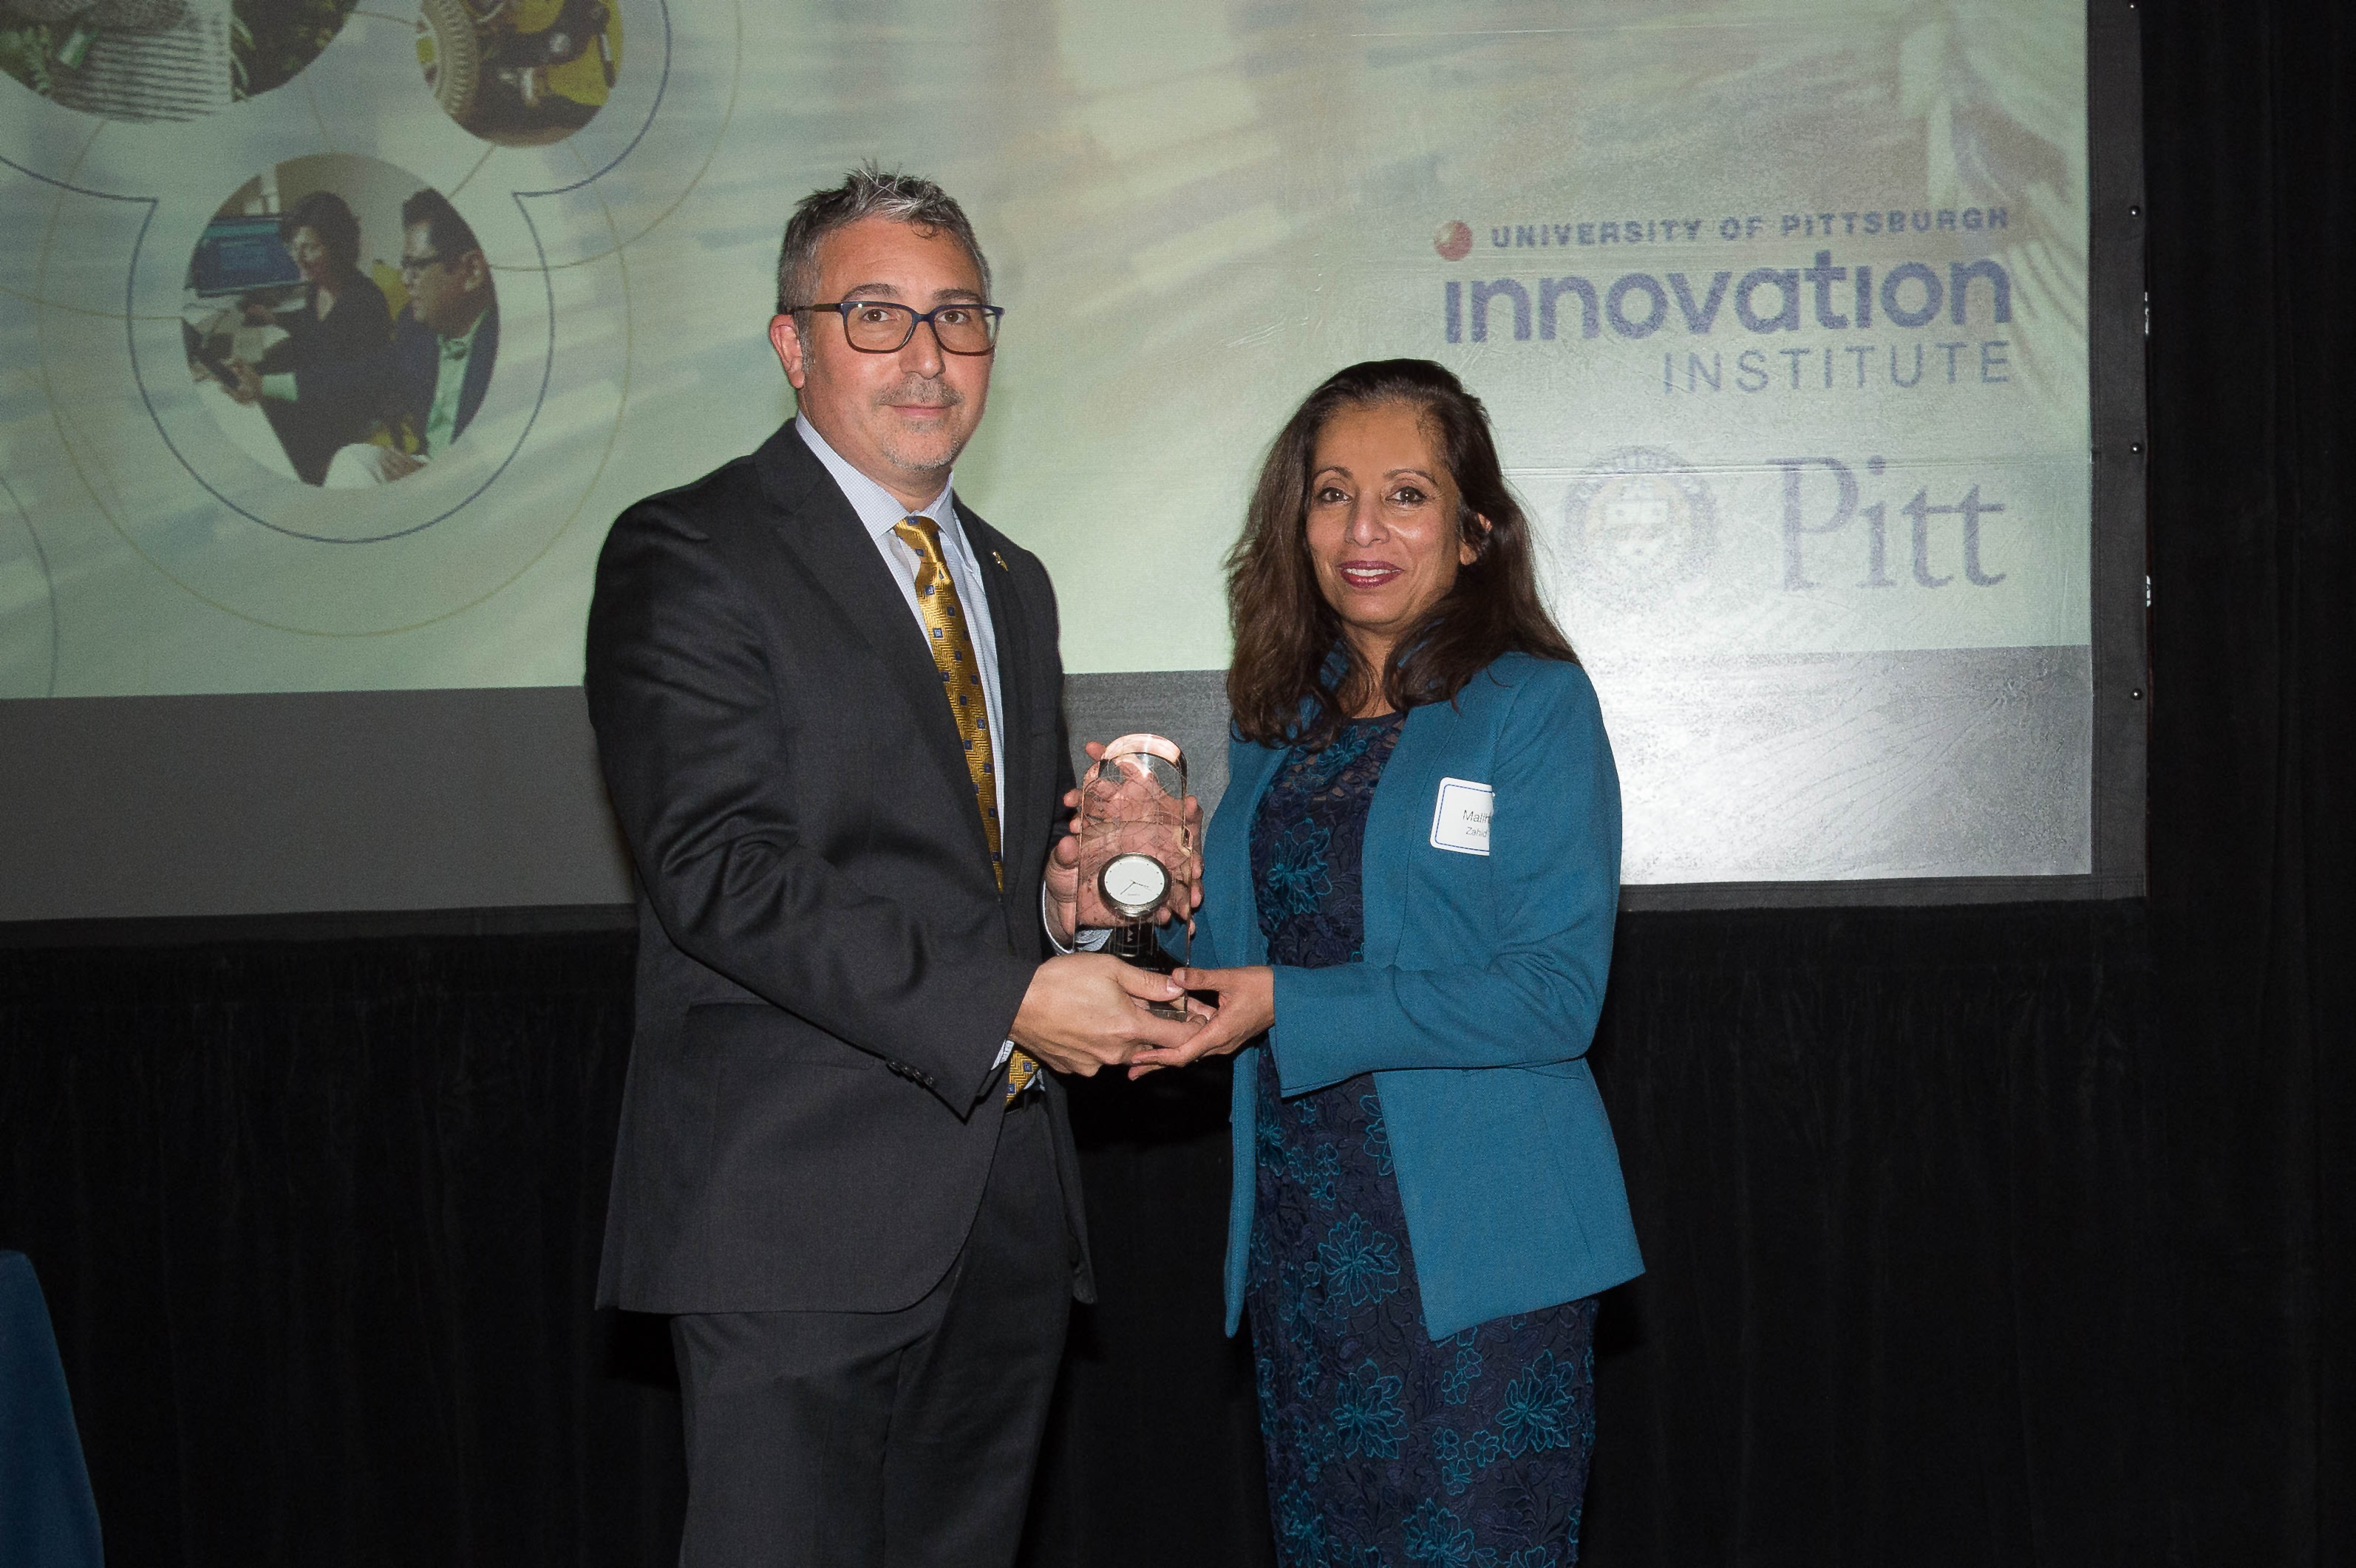 Dr. Mahila Zahid, assistant professor in the Department of Developmental Biology at the University of Pittsburgh is presented with the Emerging Innovator award by Evan Facher, Director of the Innovation Institute and Vice Chancellor for Innovation & Entrepreneurship.